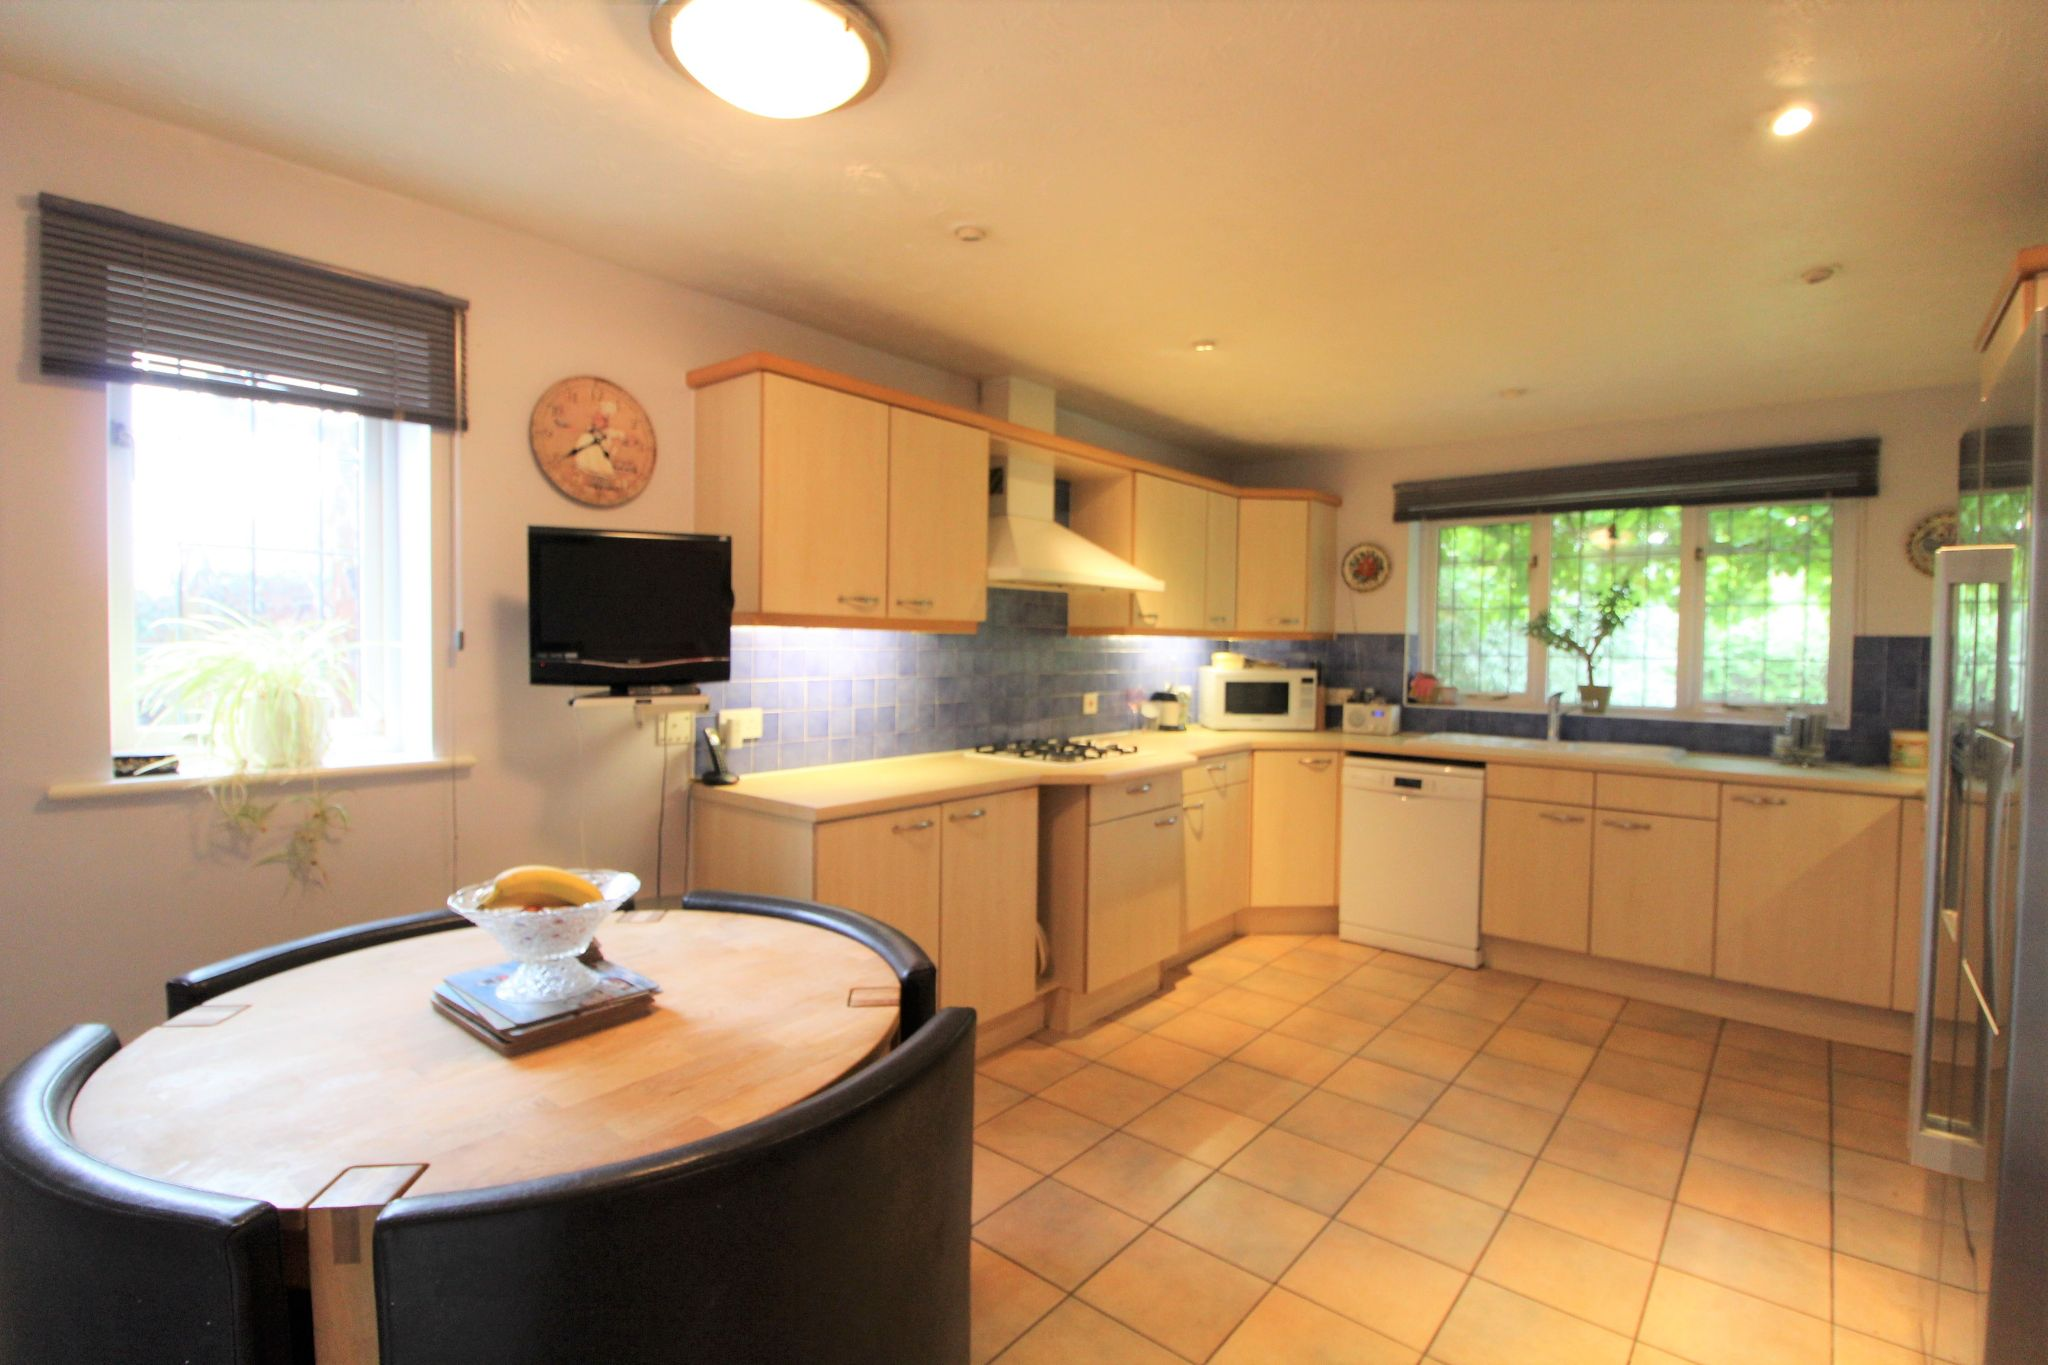 5 bedroom detached house For Sale in West Cheshunt - Photograph 5